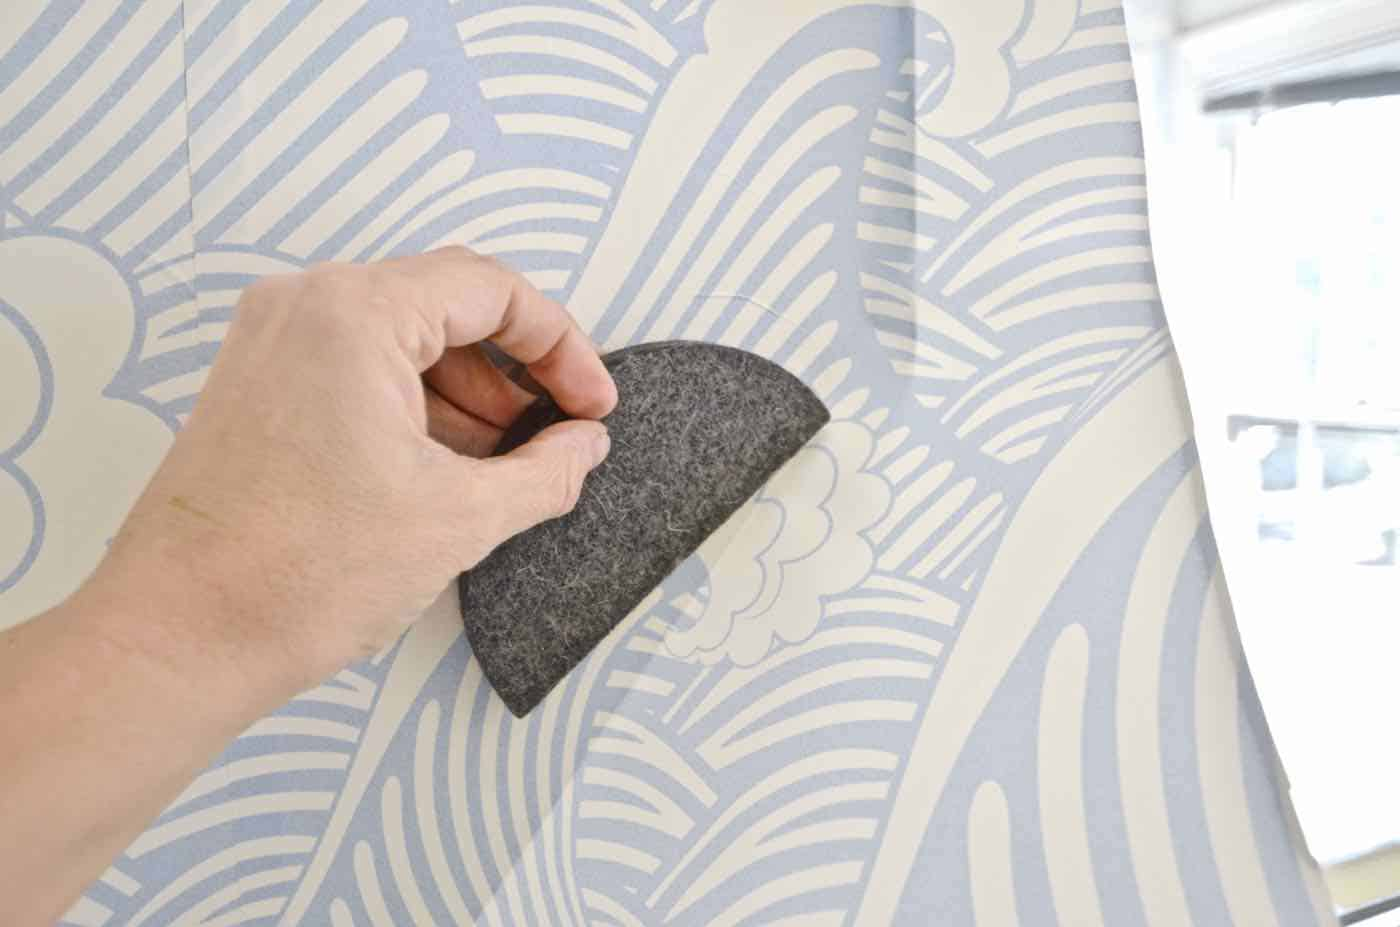 How to apply peel and stick removable wallpaper.